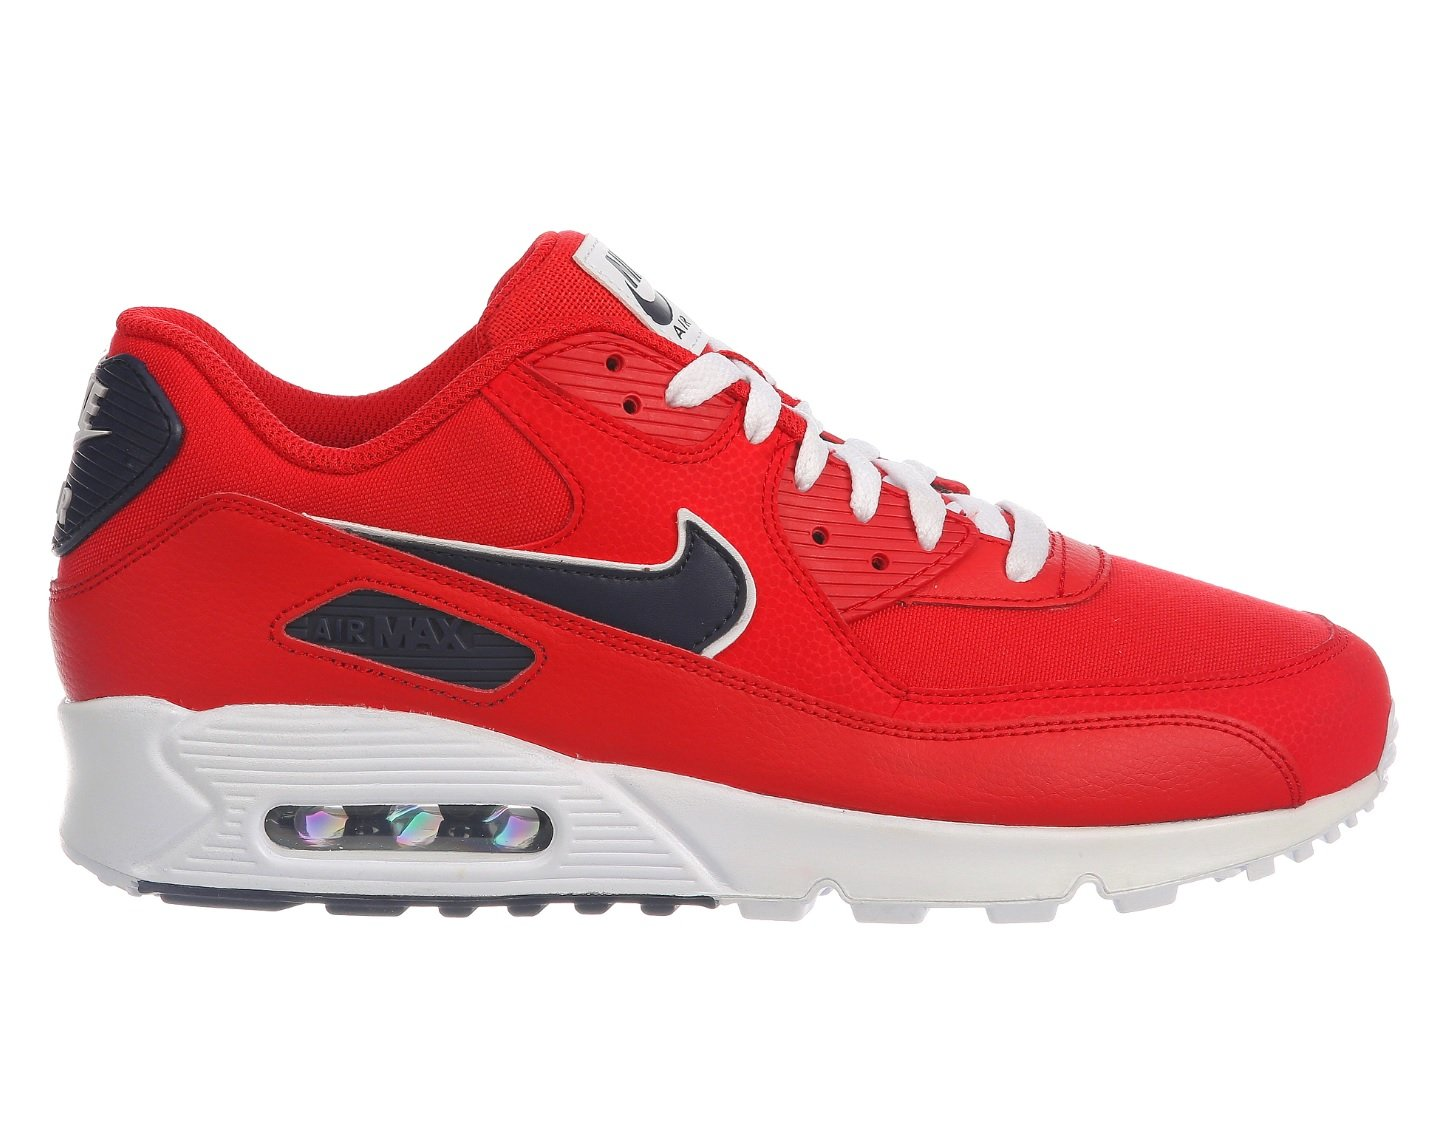 sale retailer a26e0 e0fcd Galleon - Nike Mens Air Max 90 Essential Running Shoes University  Red Blackened Blue White AJ1285-601 Size 8.5